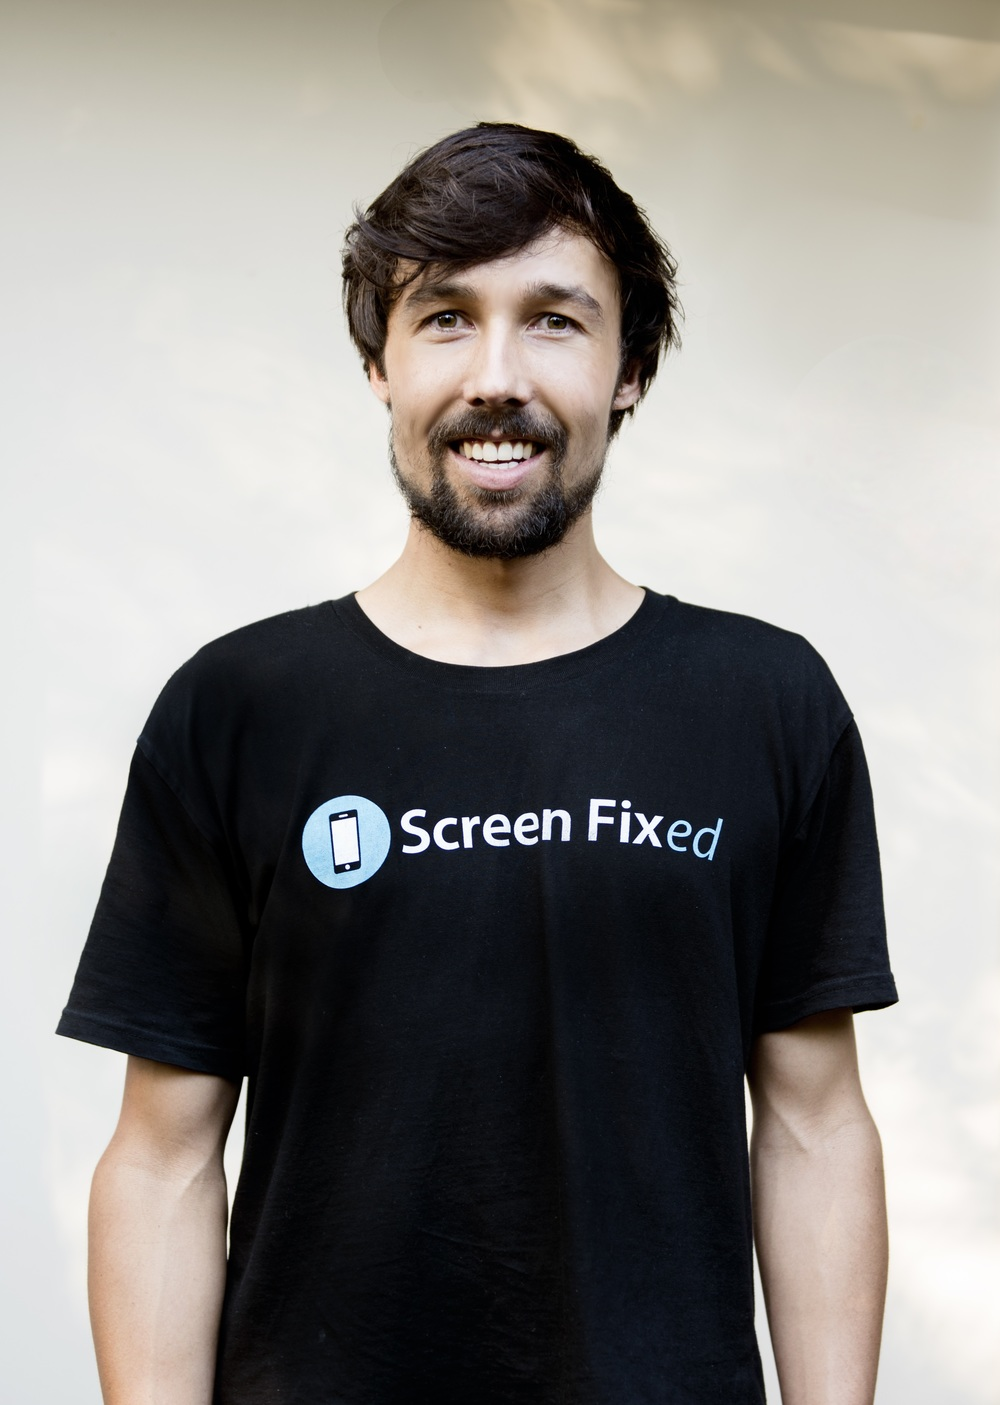 Screen Fixed Founder and Head of Product and Marketing, Ben Turner